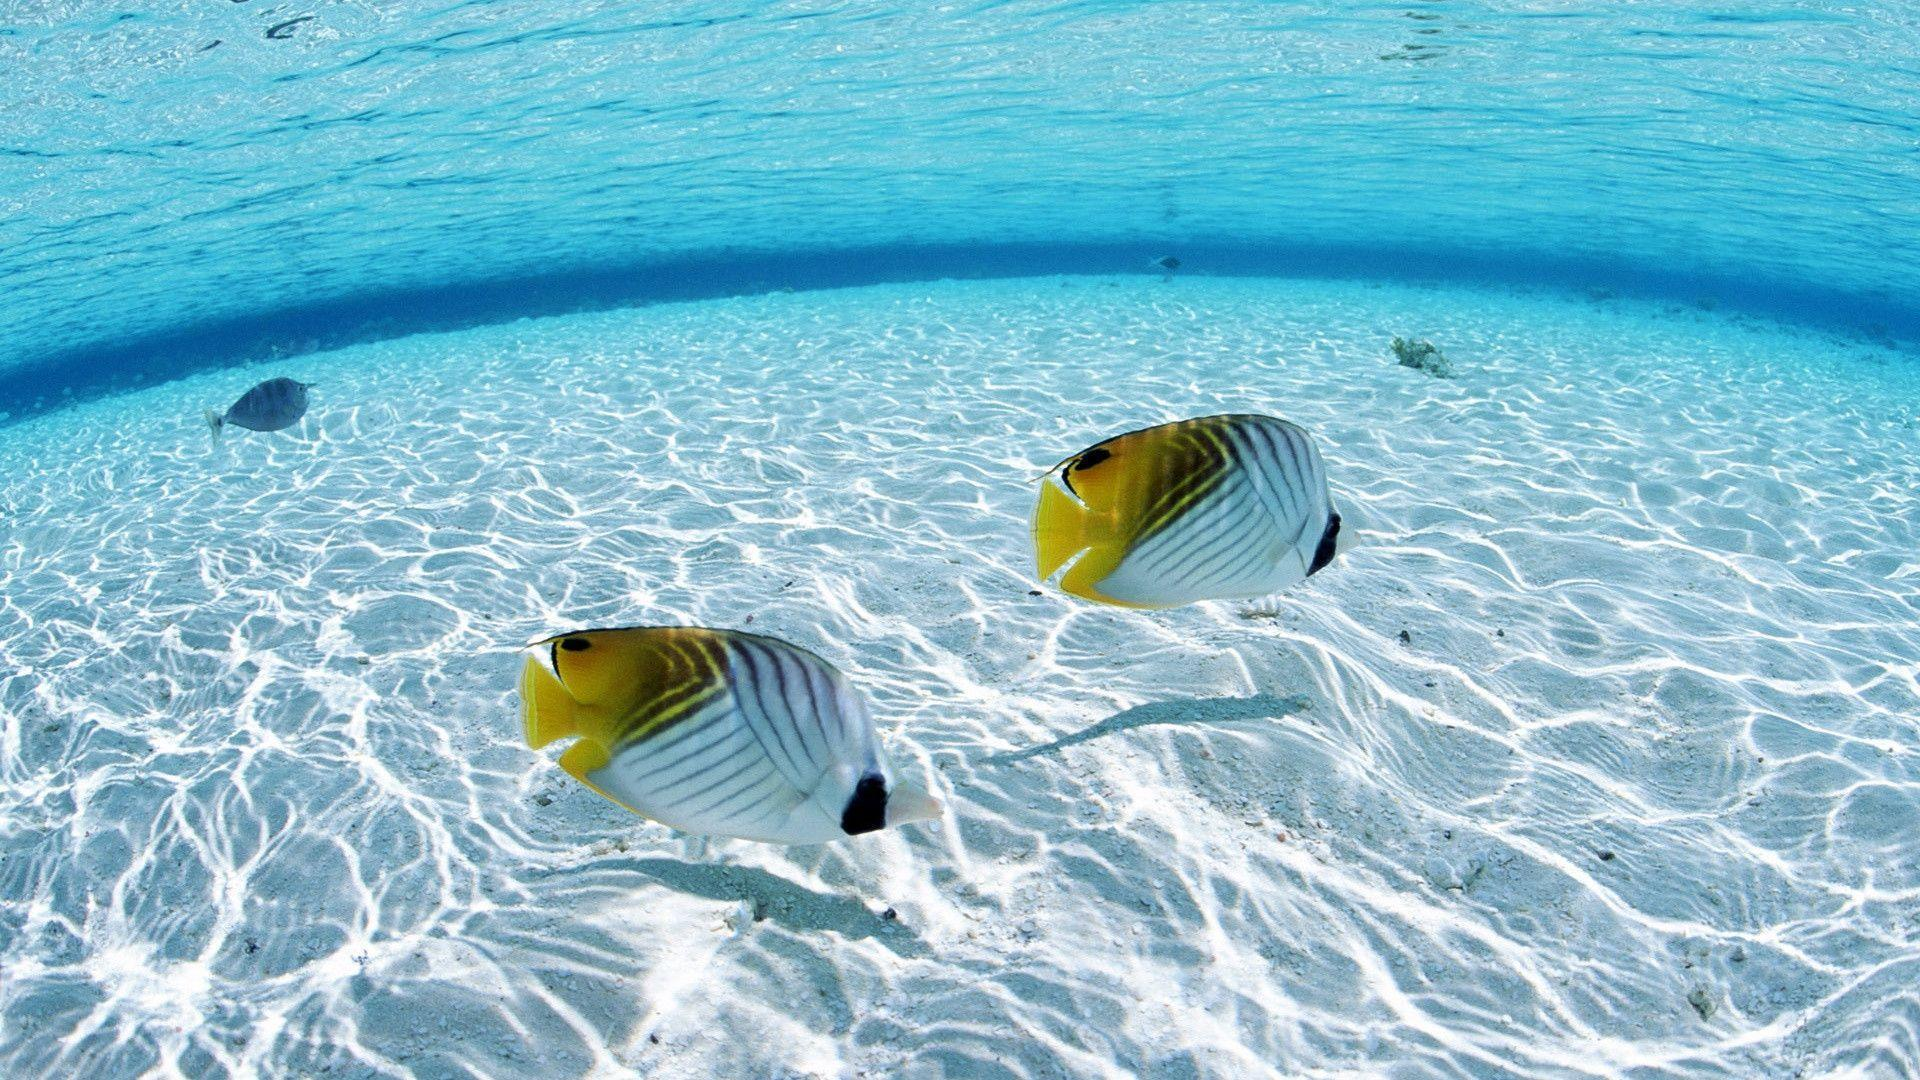 Hd Tropical Island Beach Paradise Wallpapers And Backgrounds: Tropical Fish Wallpapers